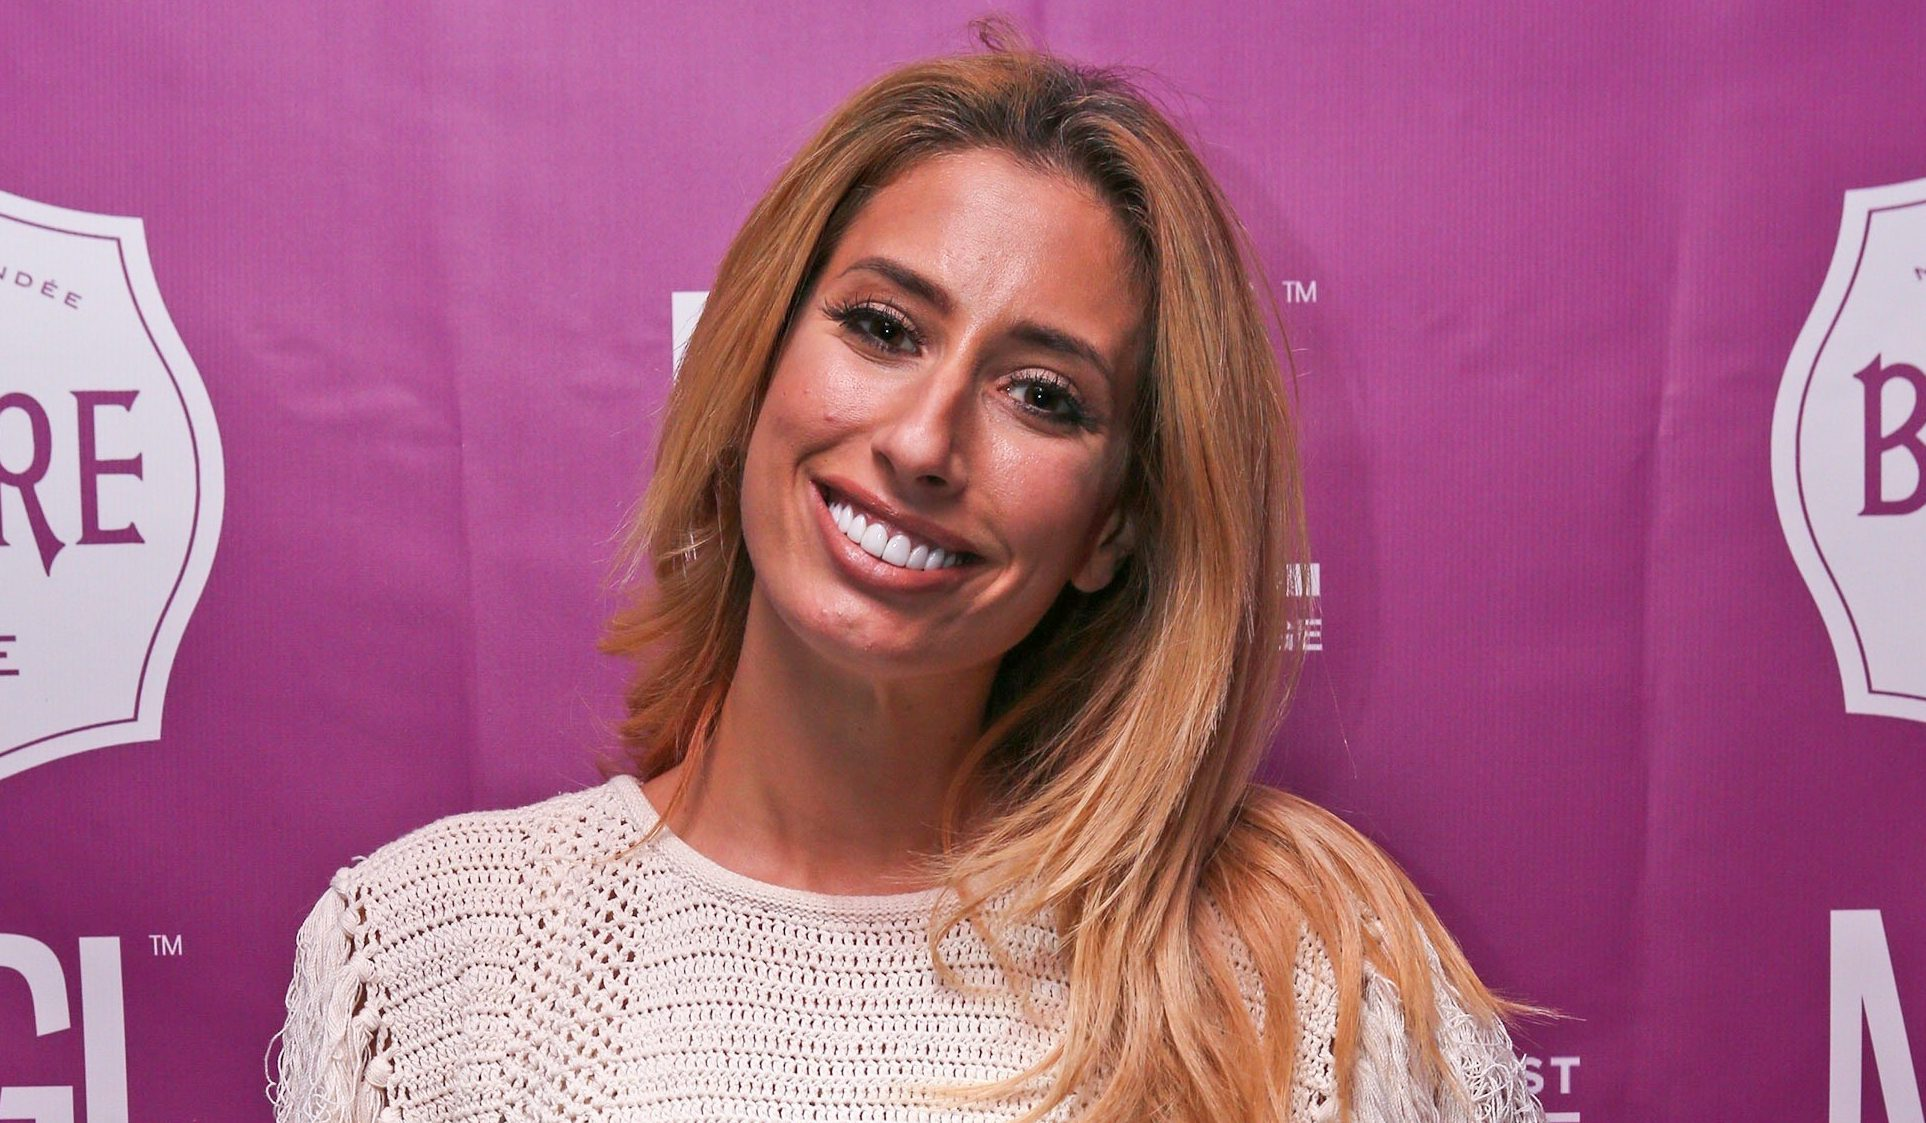 Stacey Solomon shares picture to celebrate Pride